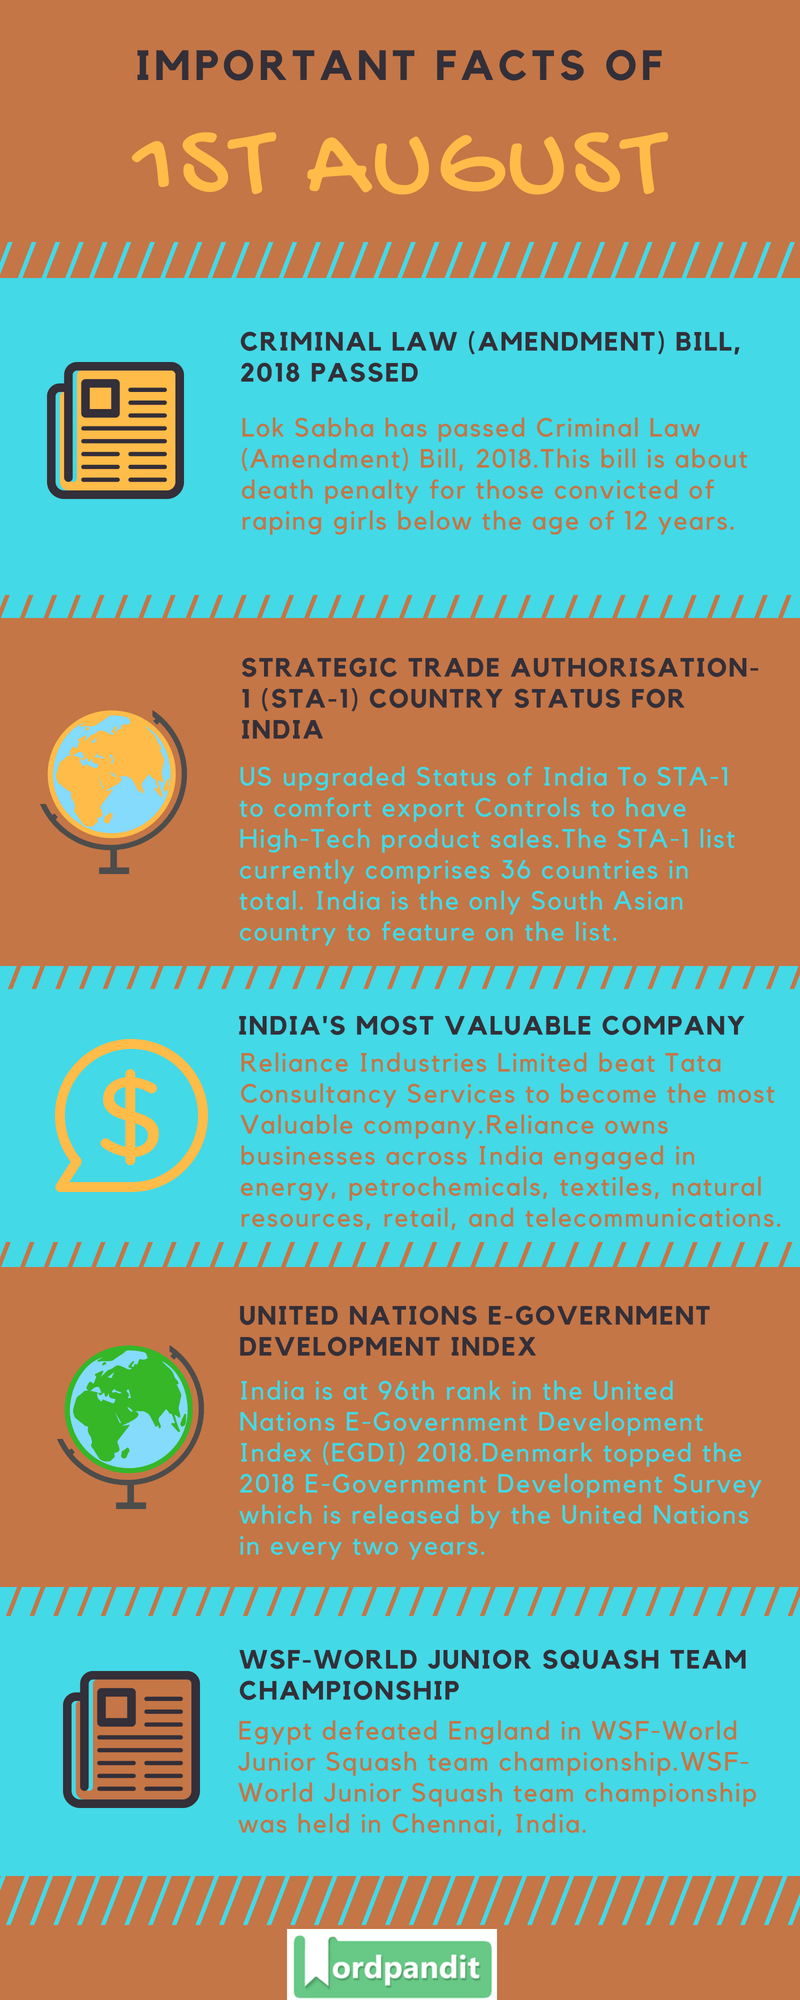 Daily Current Affairs 1 August 2018 Current Affairs Quiz August 1 2018 Current Affairs Infographic